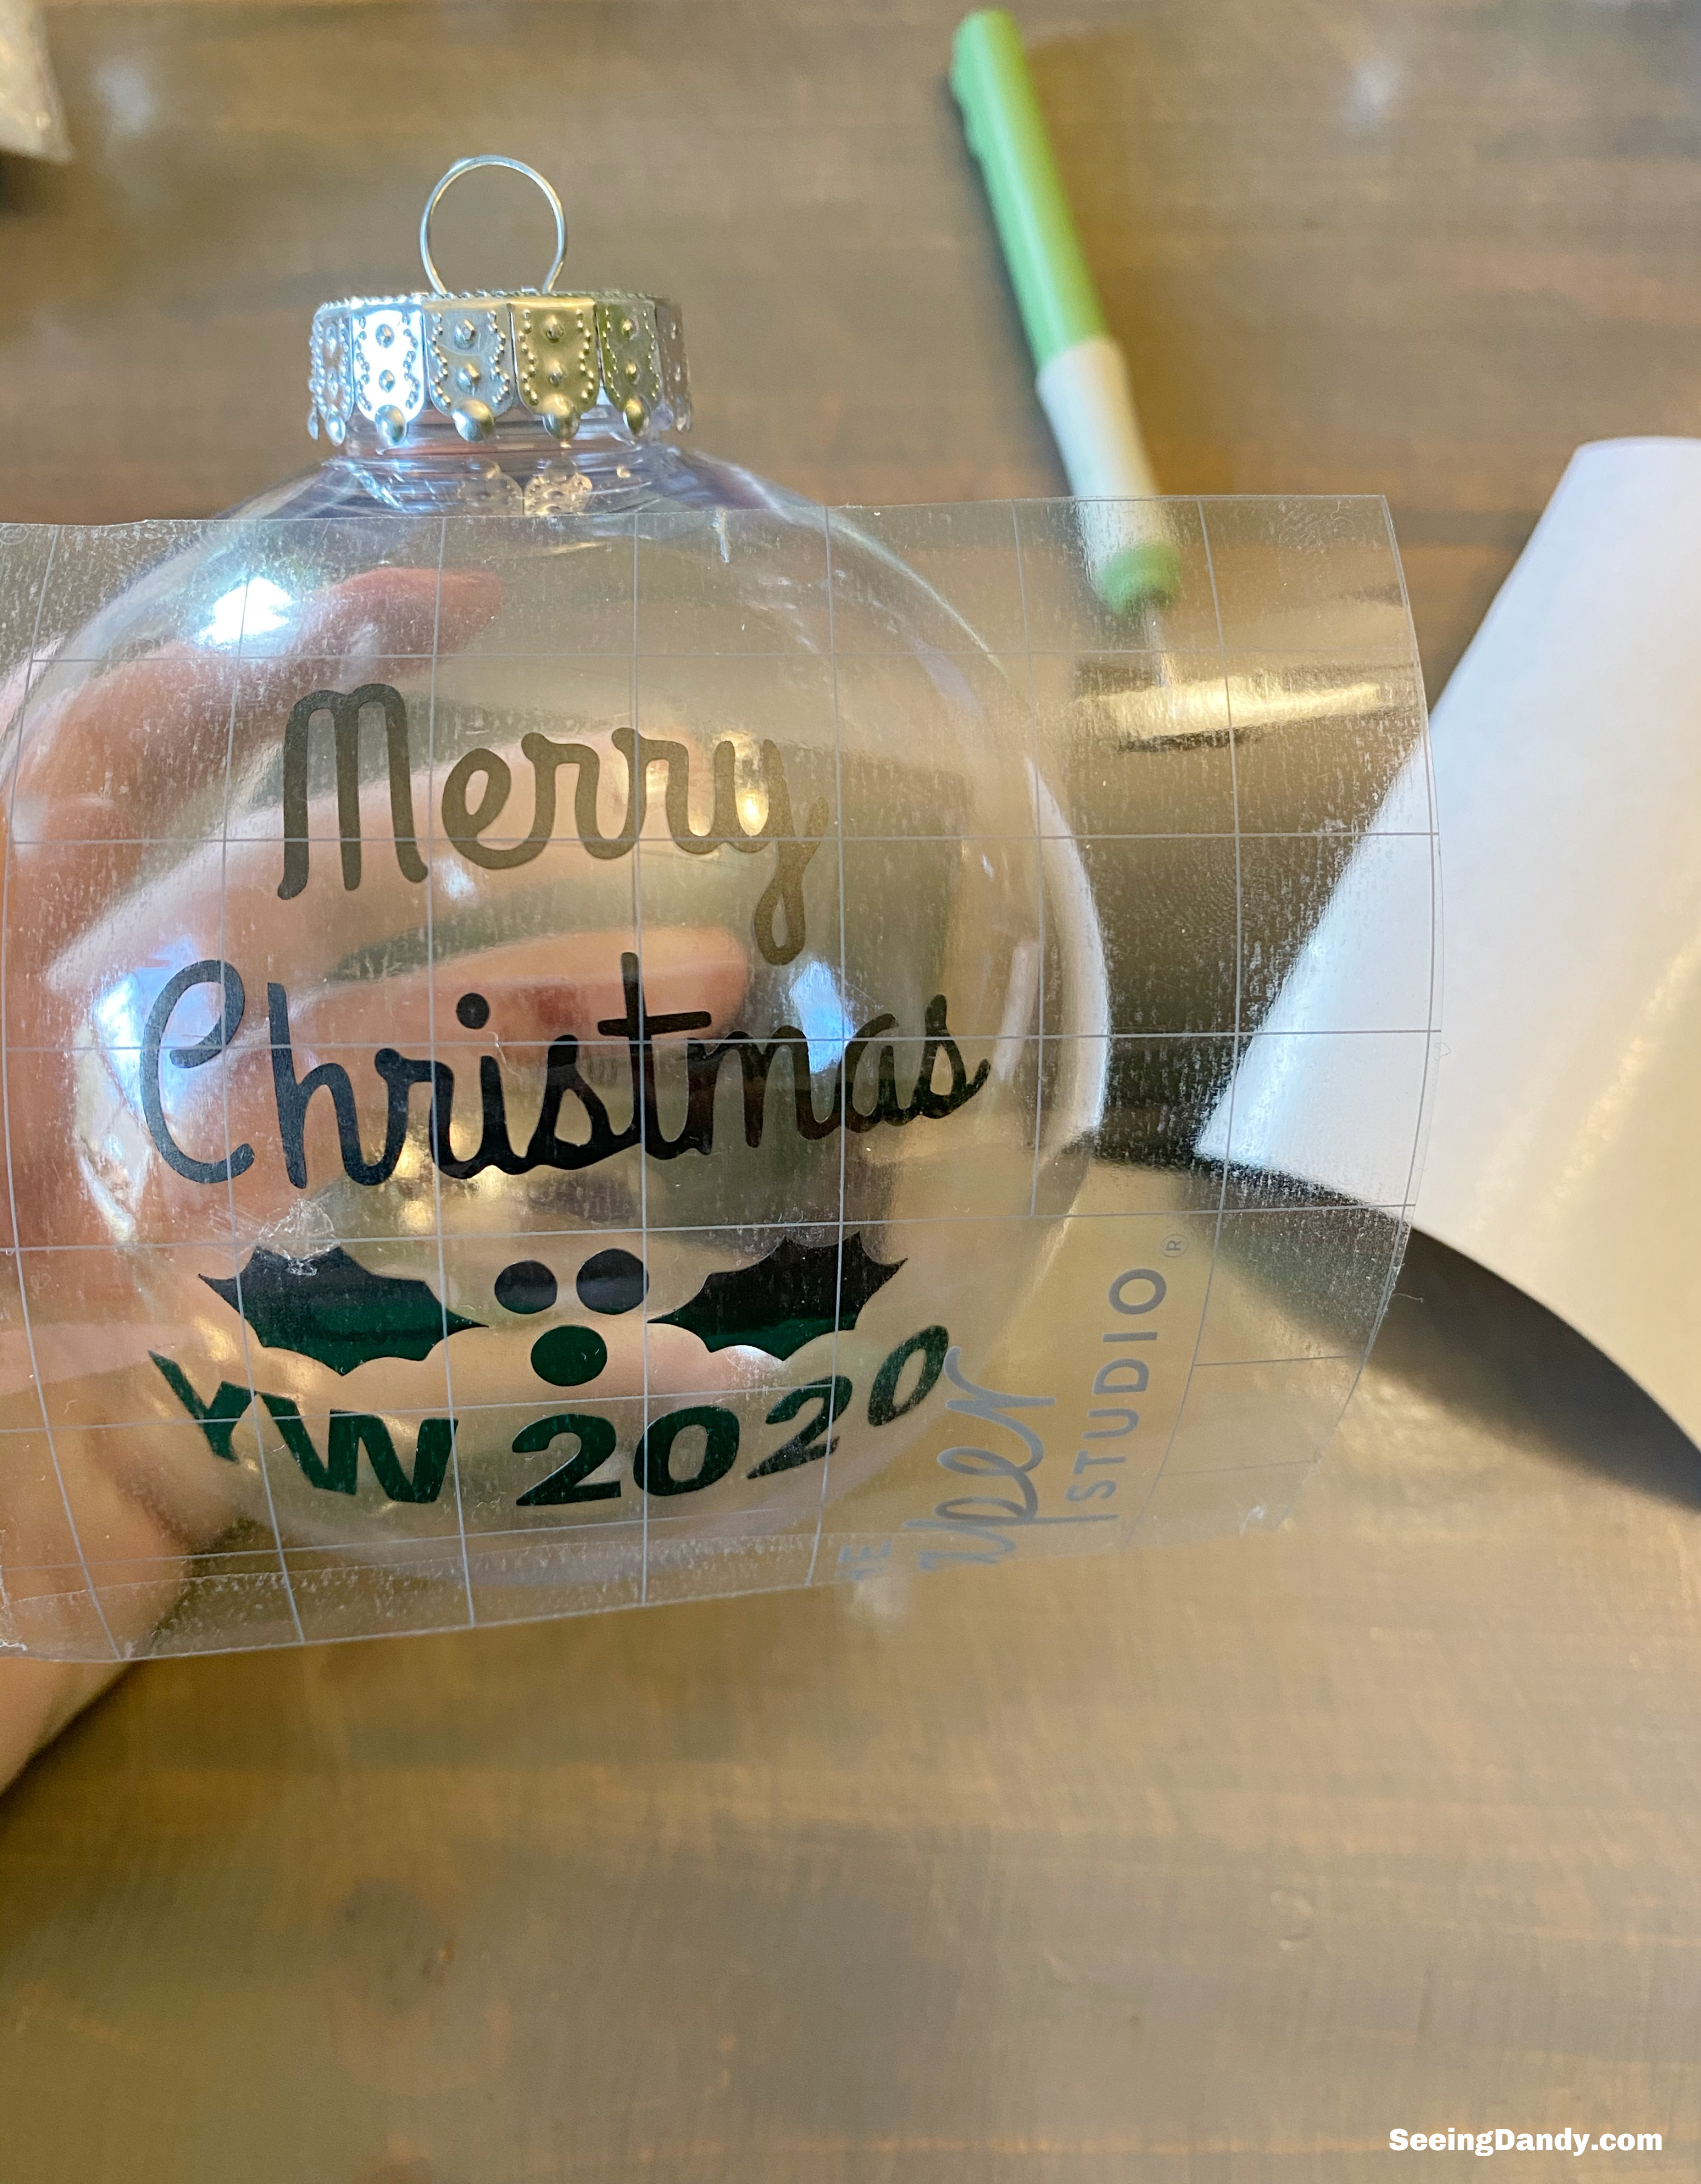 merry christmas yw 2020 vinyl, holly berry vinyl image, clear craft ornaments